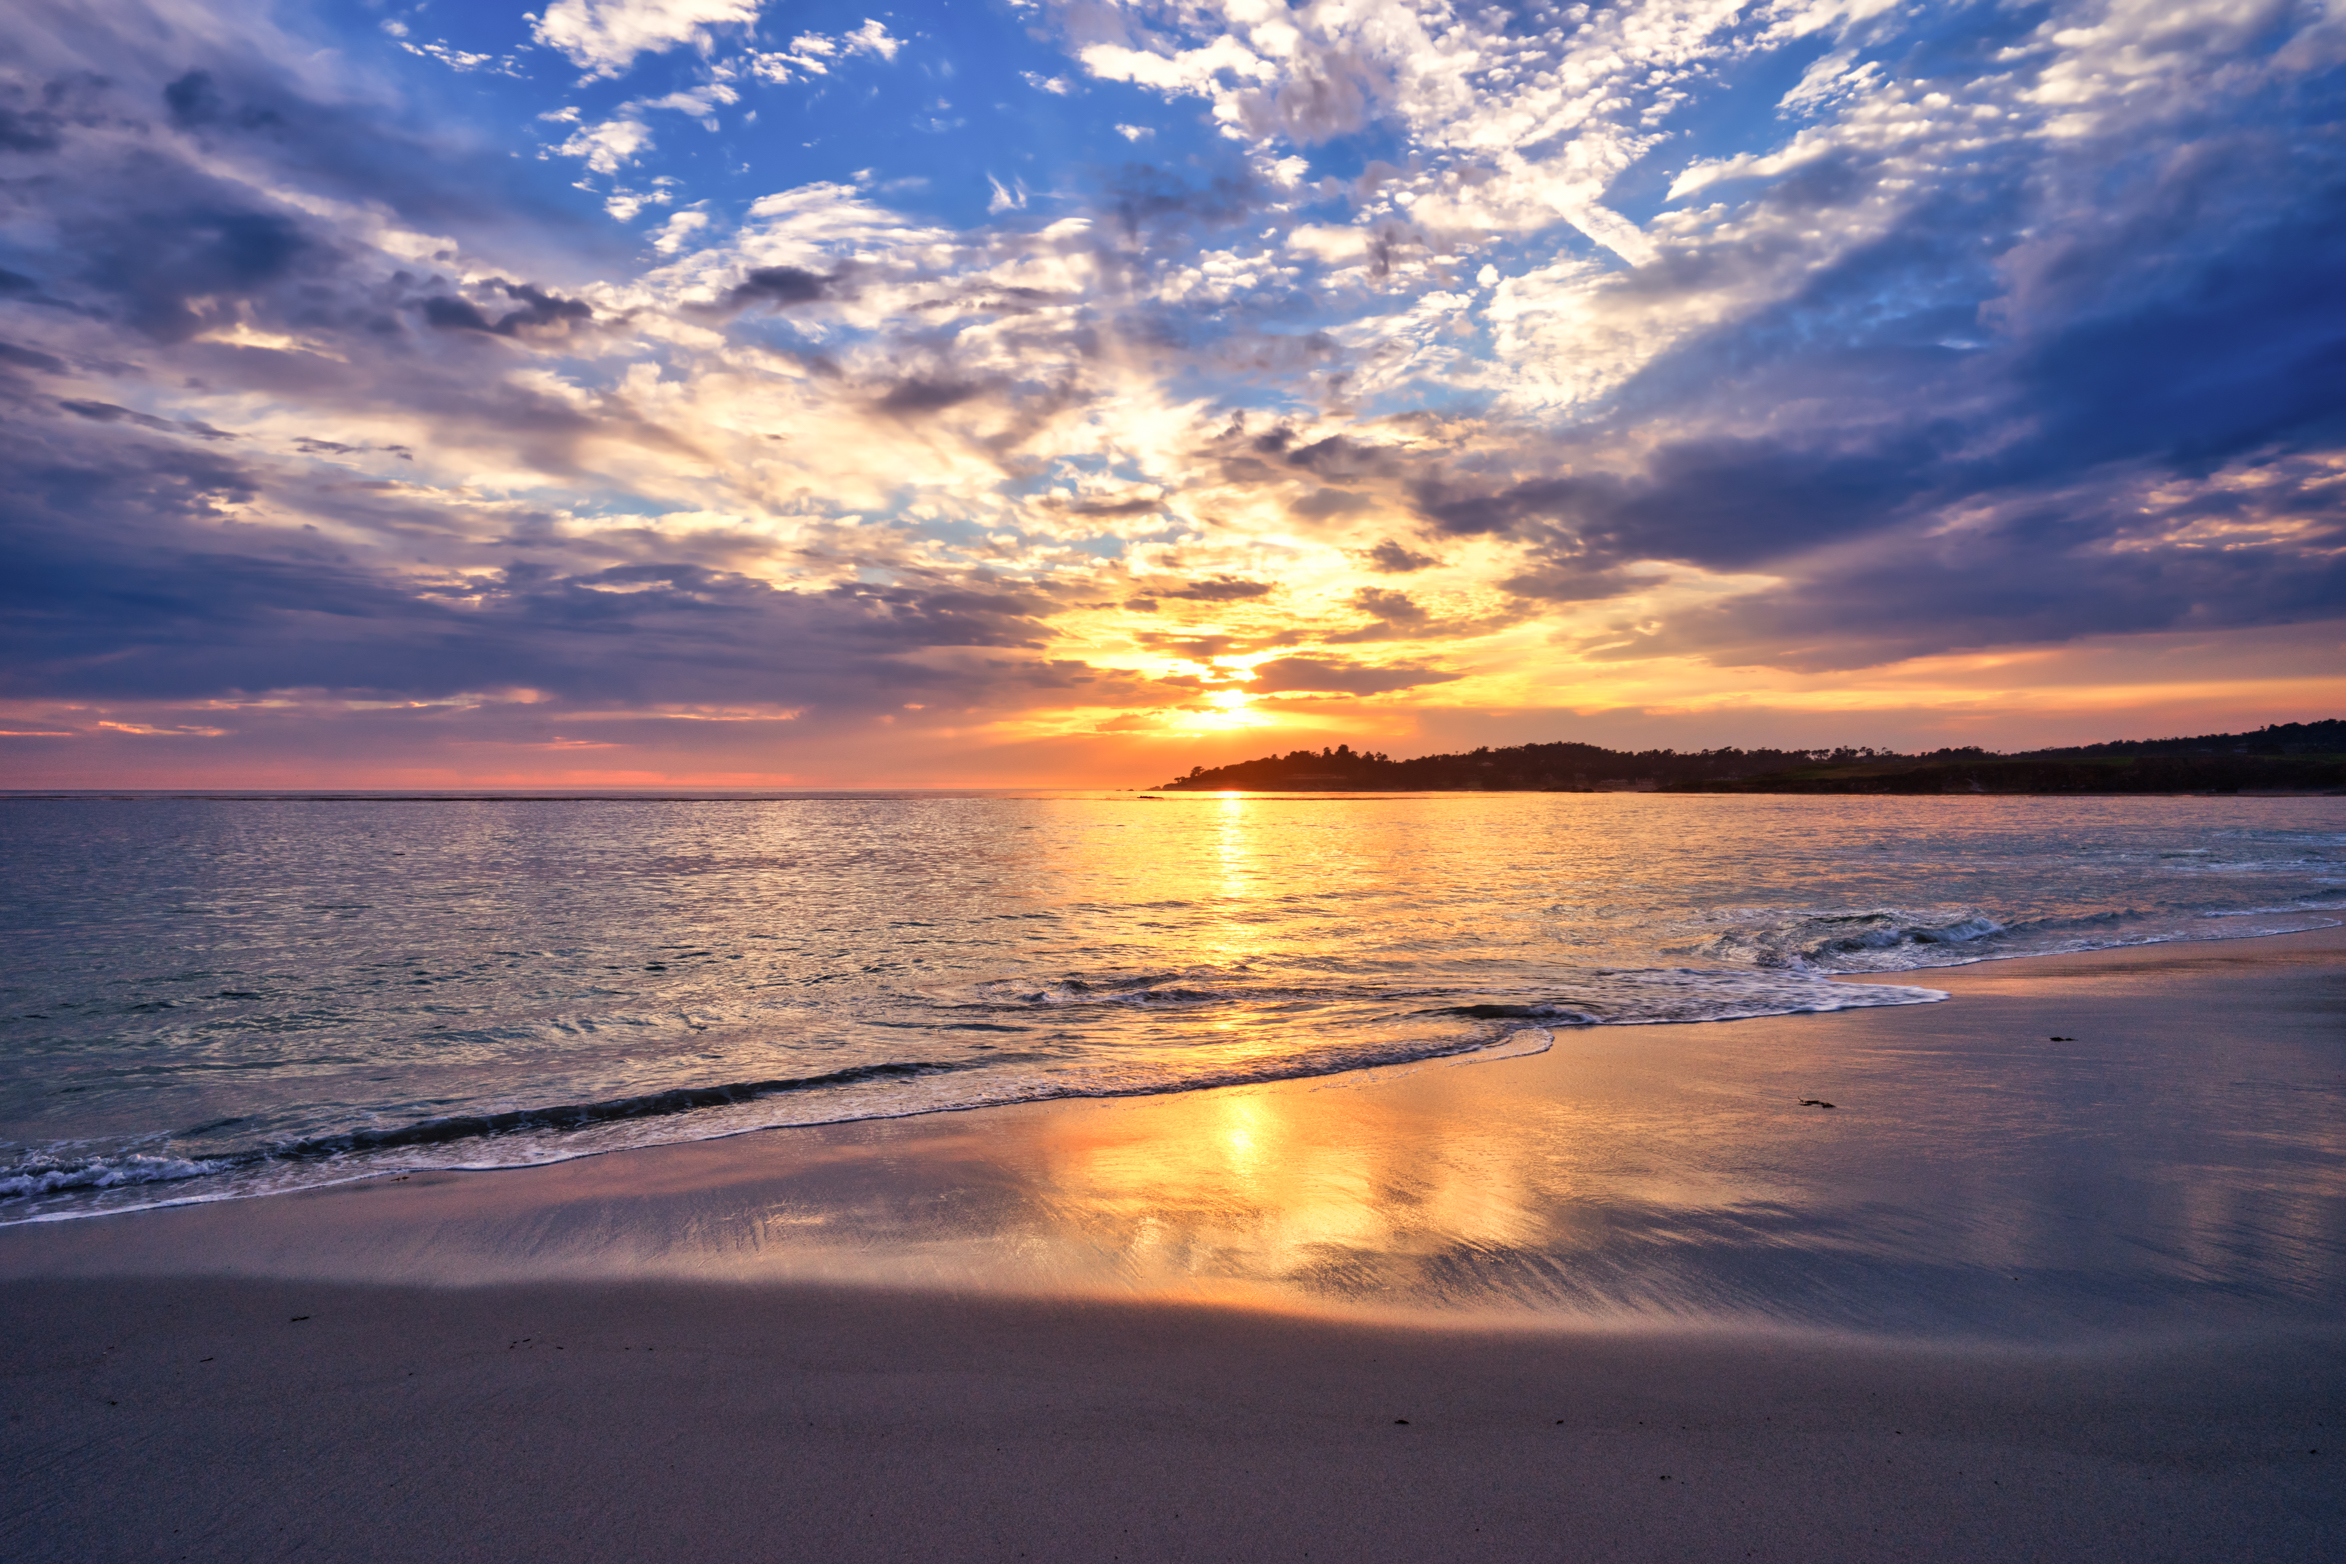 CA-Carmel-sunset-beach-empty.jpg